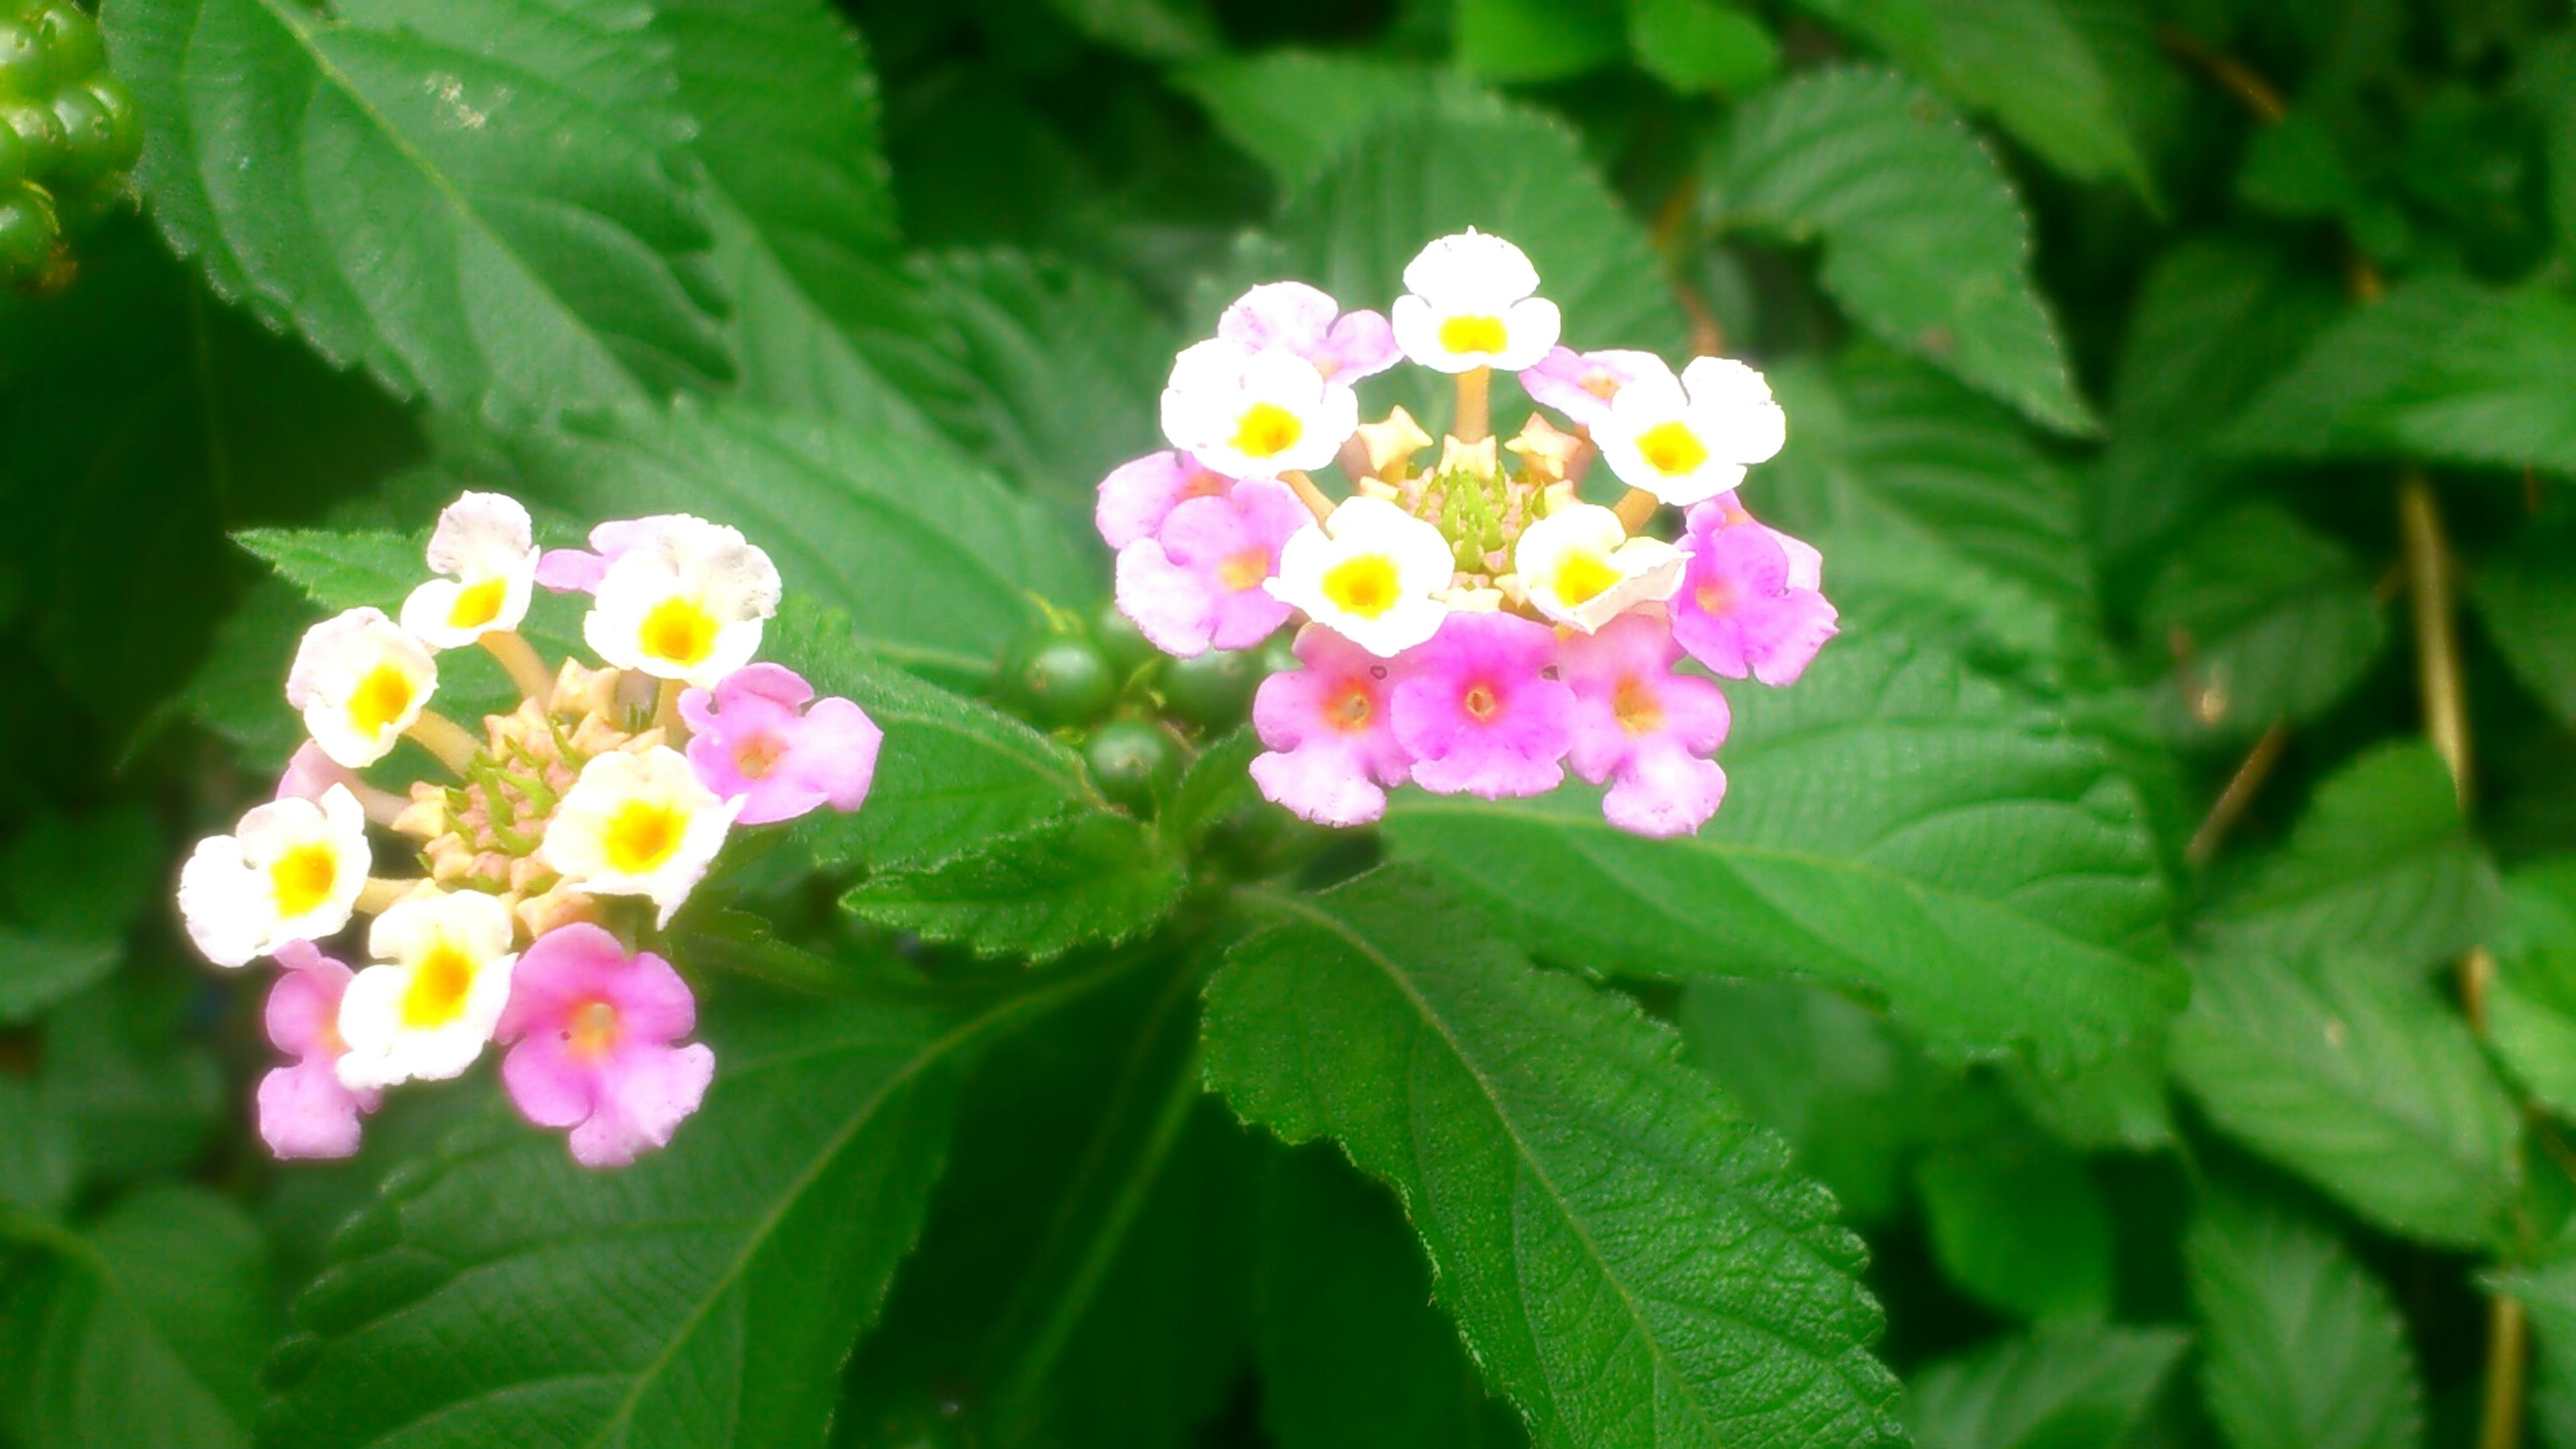 flower, freshness, petal, leaf, fragility, growth, beauty in nature, flower head, blooming, green color, nature, plant, close-up, focus on foreground, in bloom, pink color, blossom, park - man made space, white color, day